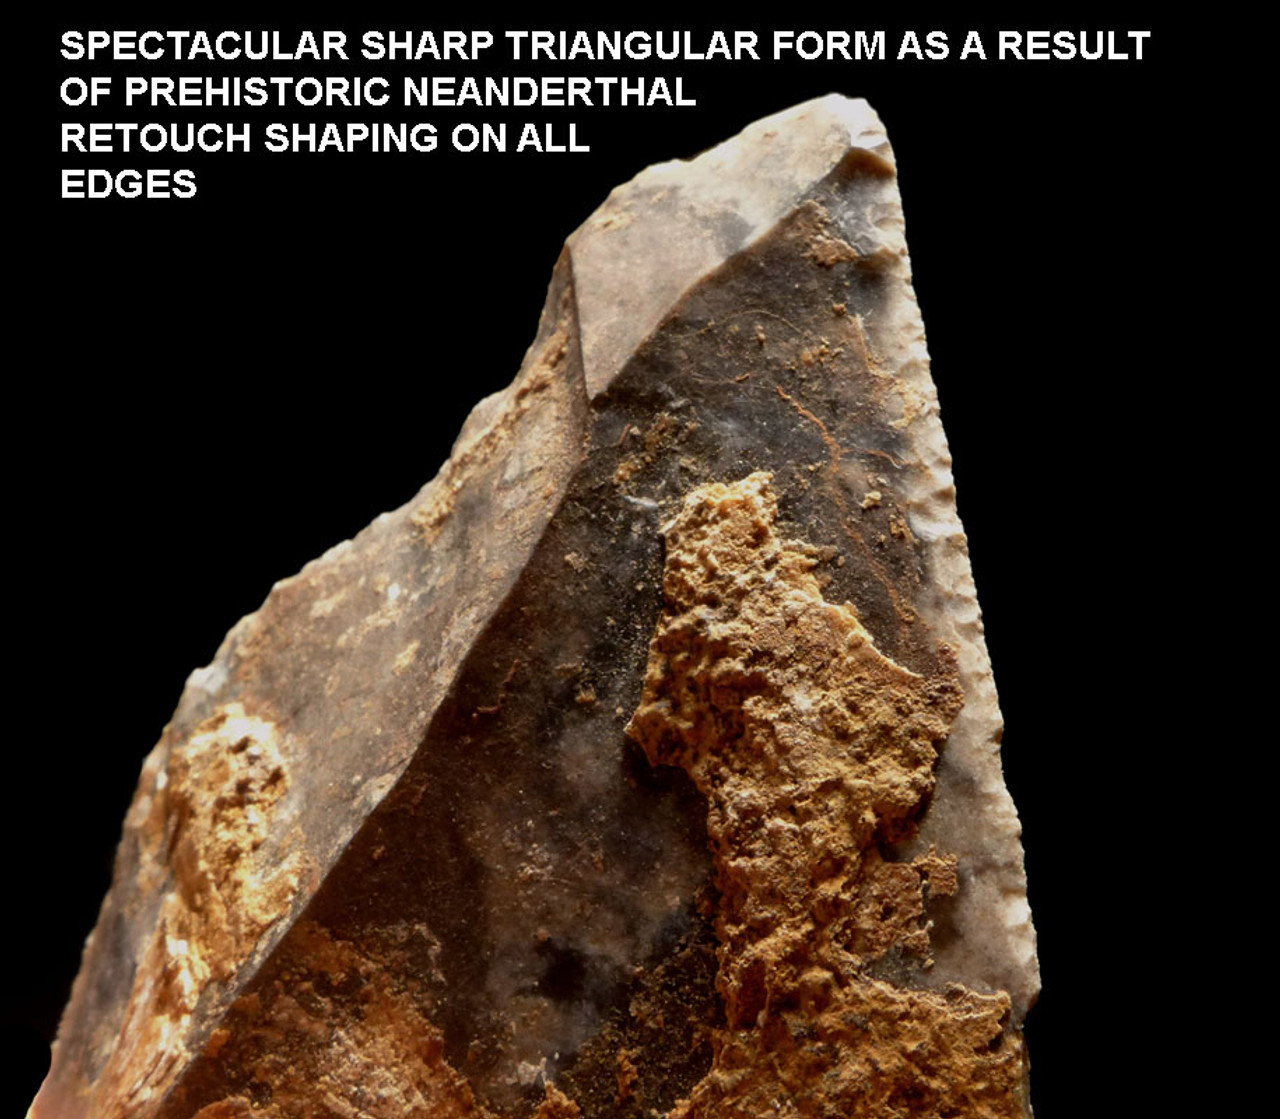 RARE NEANDERTHAL MOUSTERIAN POINT SPEARHEAD WITH IMPROVED INTELLIGENT FORM M336